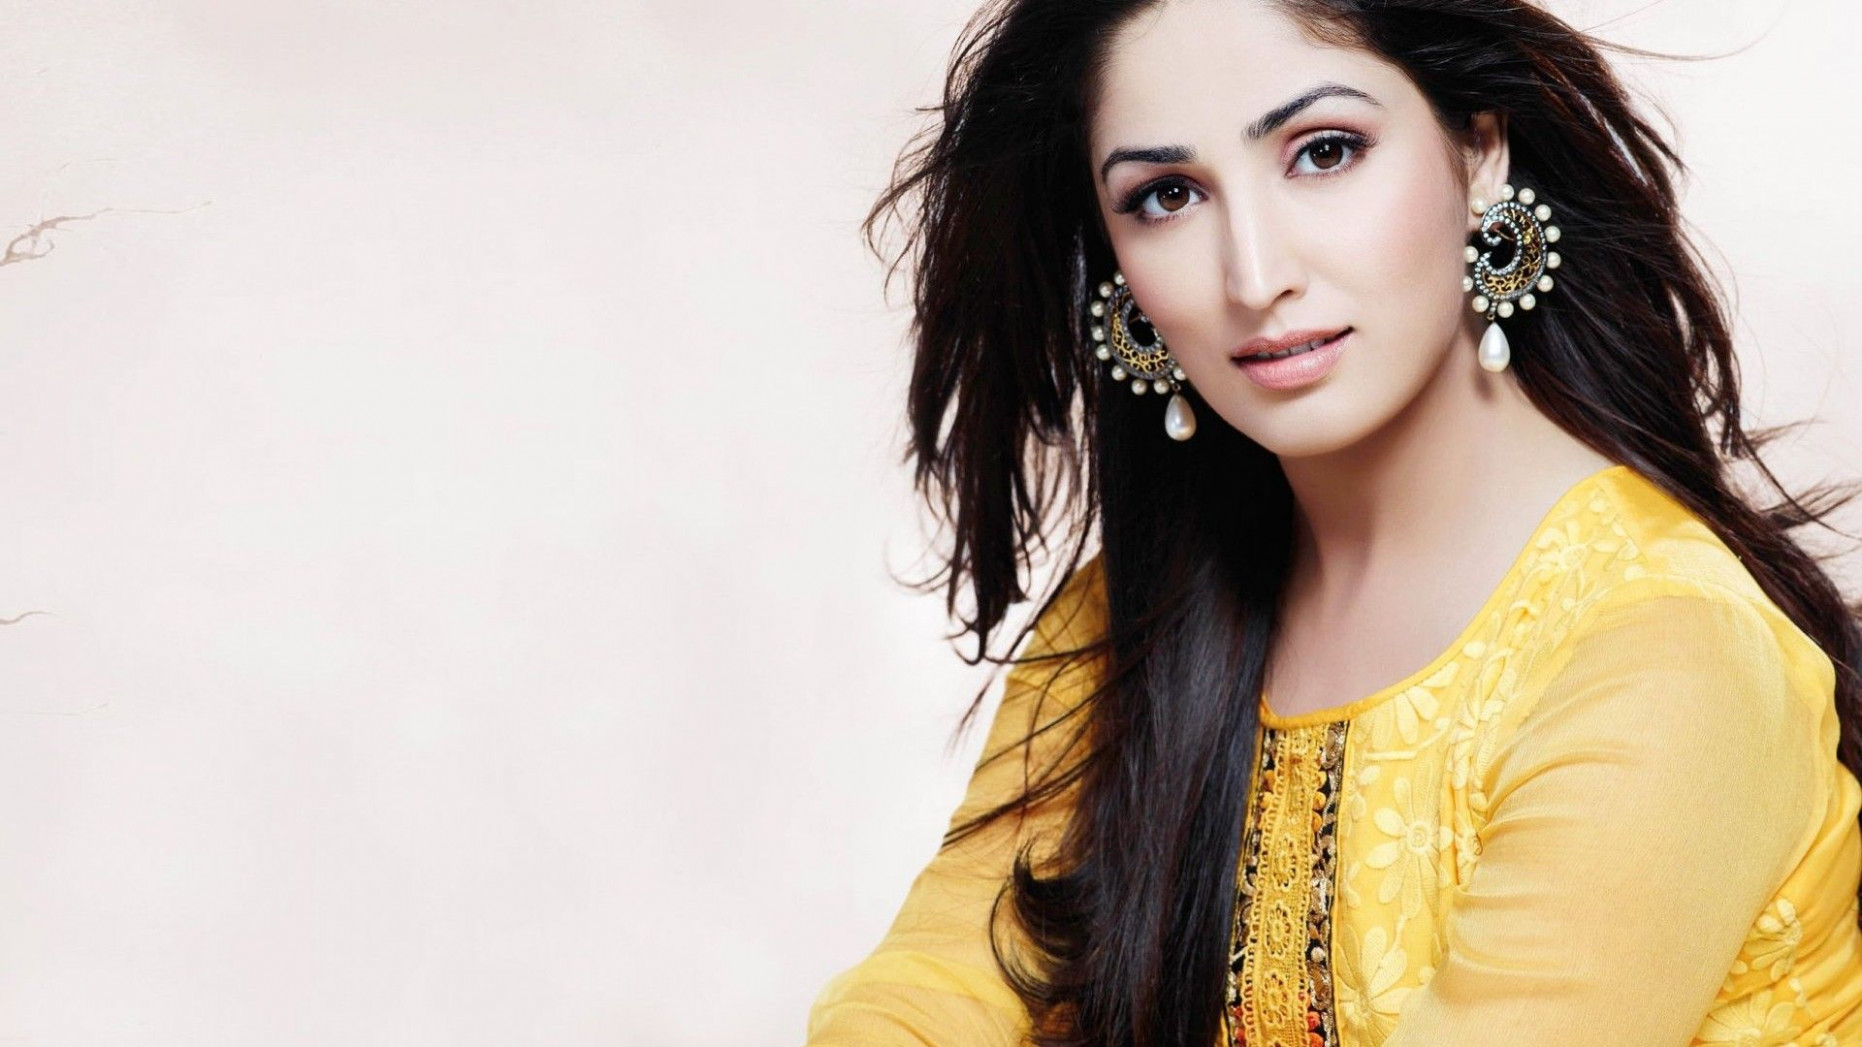 Wonderful bollywood actress hd wallpapers 1366x768 On ..